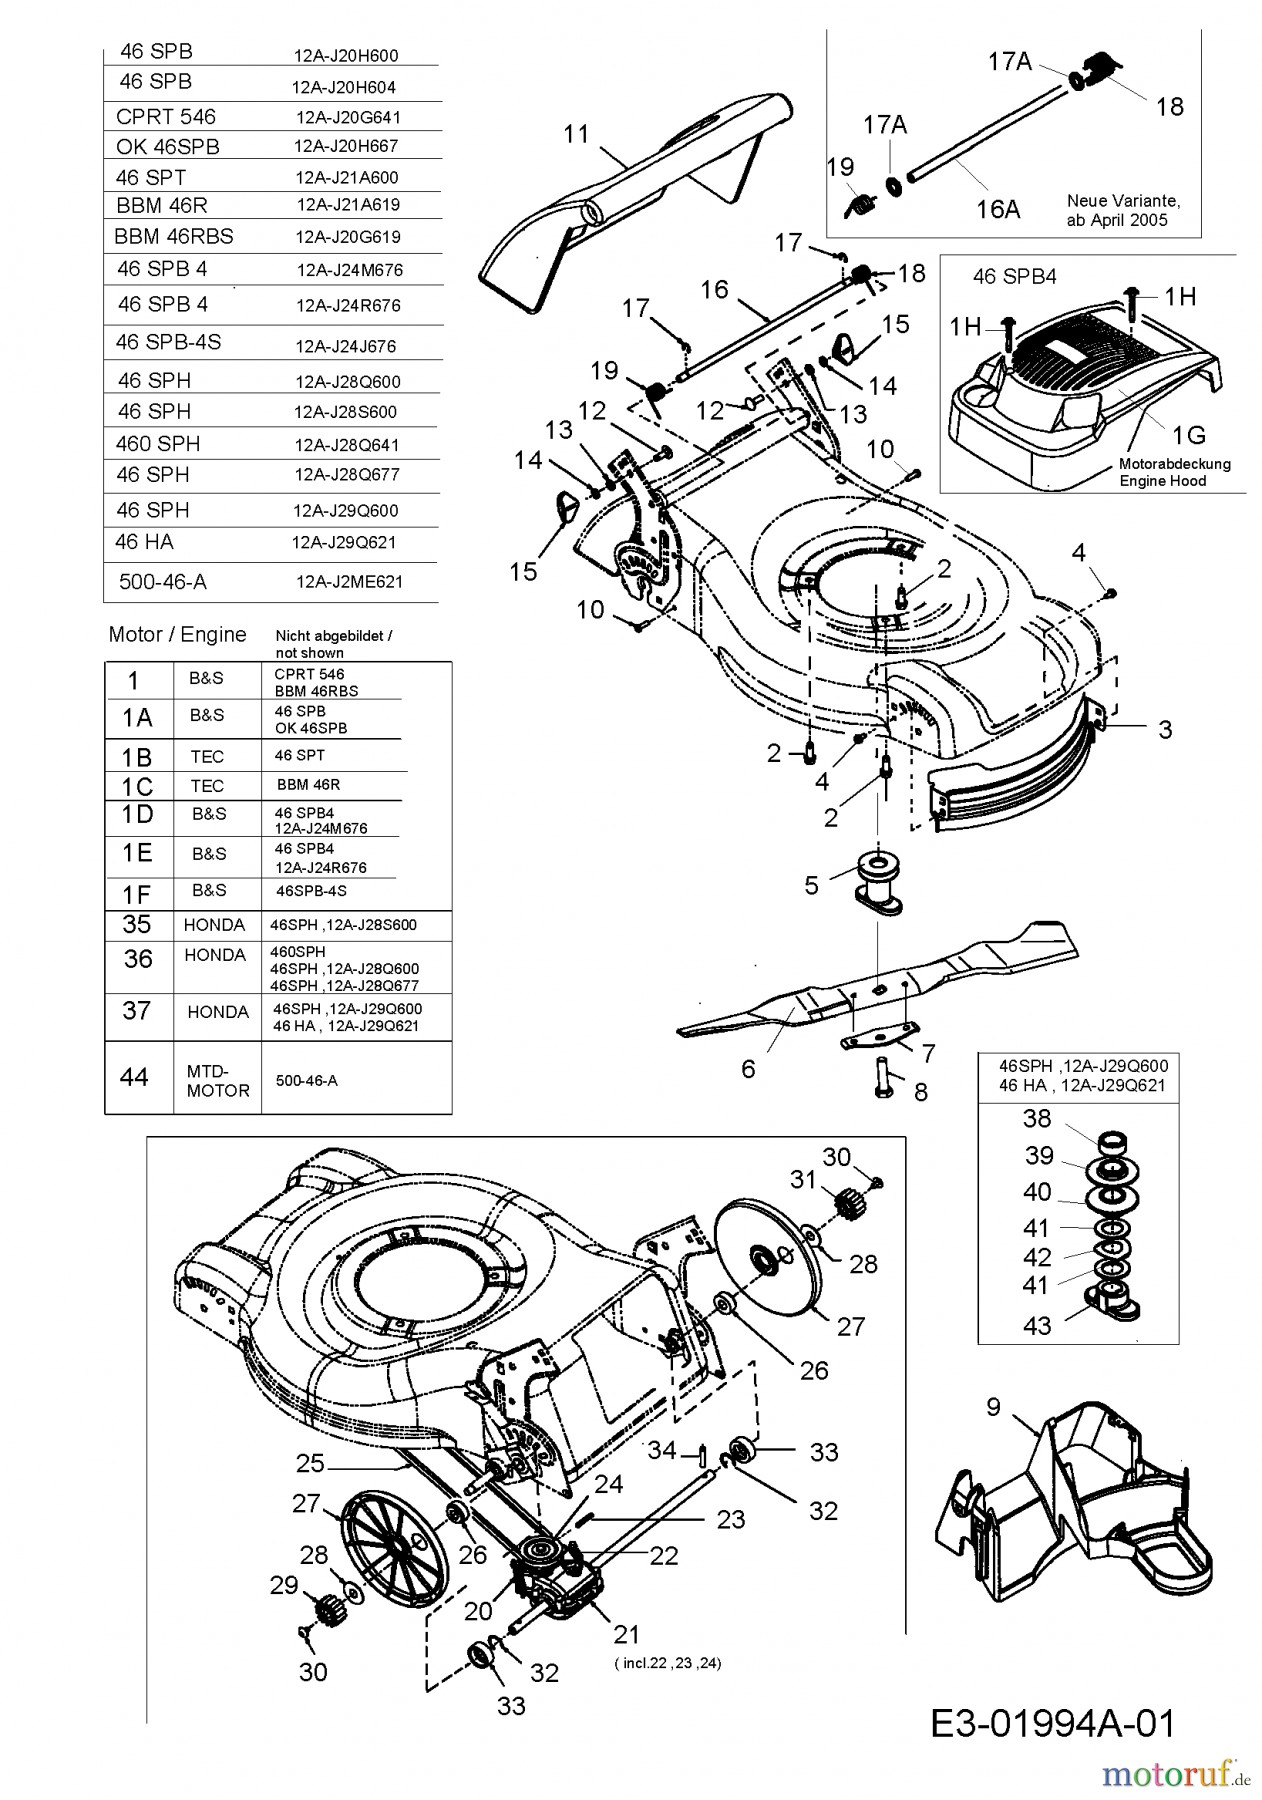 Honda Gcv160 Engine Diagram Engine Honda Gcv160 as3h2 5 5h Of Honda Gcv160 Engine Diagram